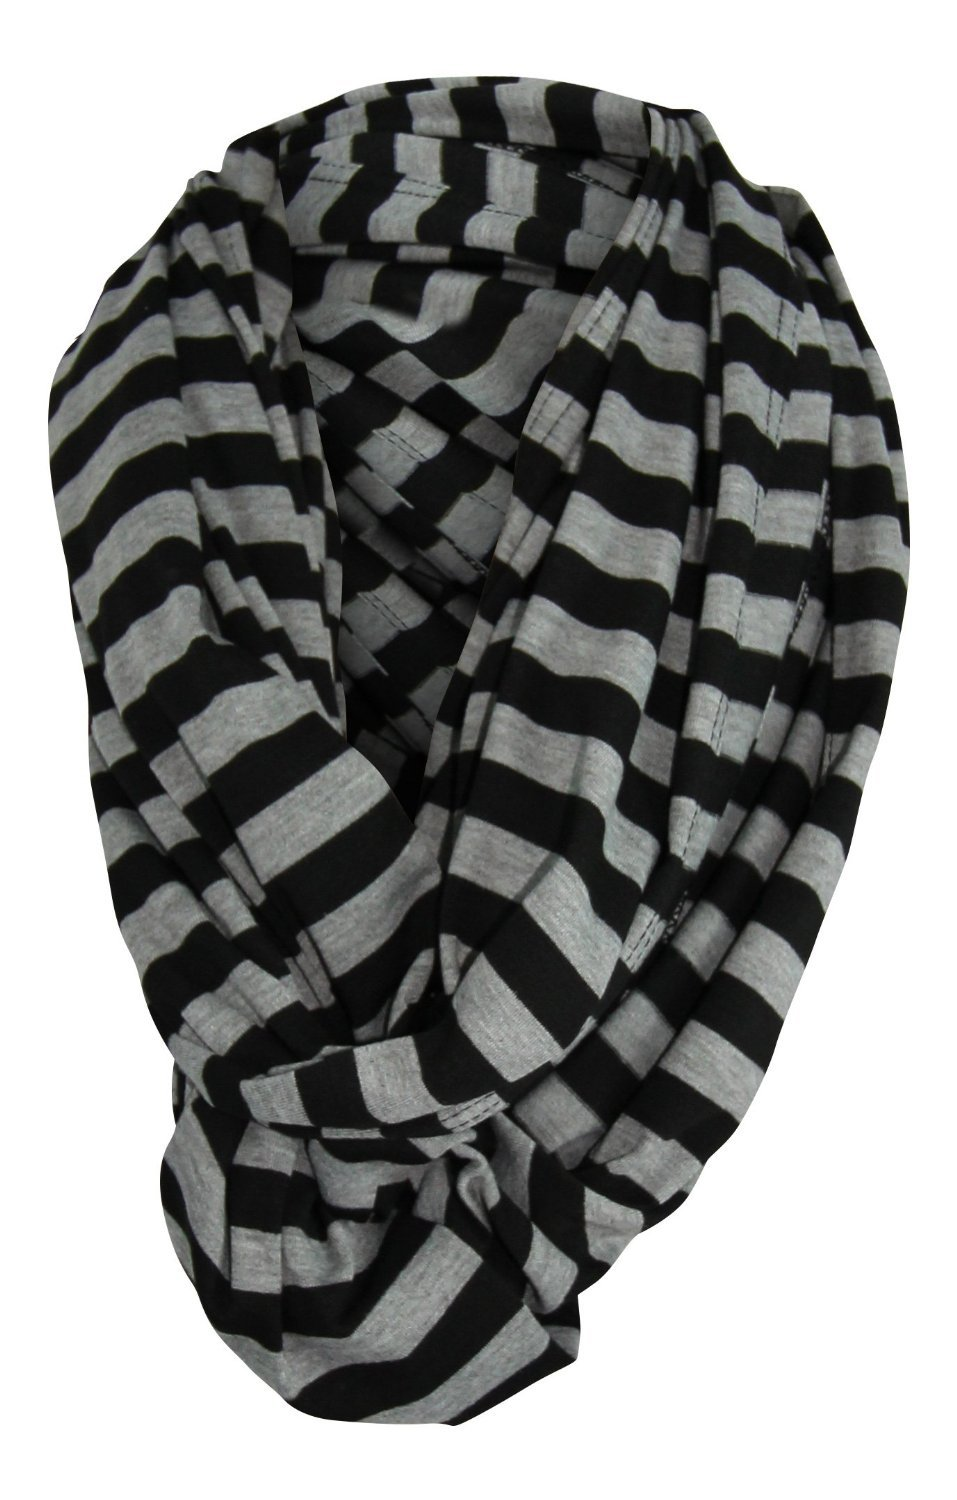 Multi-Use Baby Breastfeeding Infinity Nursing Cover / Nursing Scarf - Tykes & Tails Black / Gray Stripe Pattern - Many Colors and Patterns of Premium Breastfeeding Covers